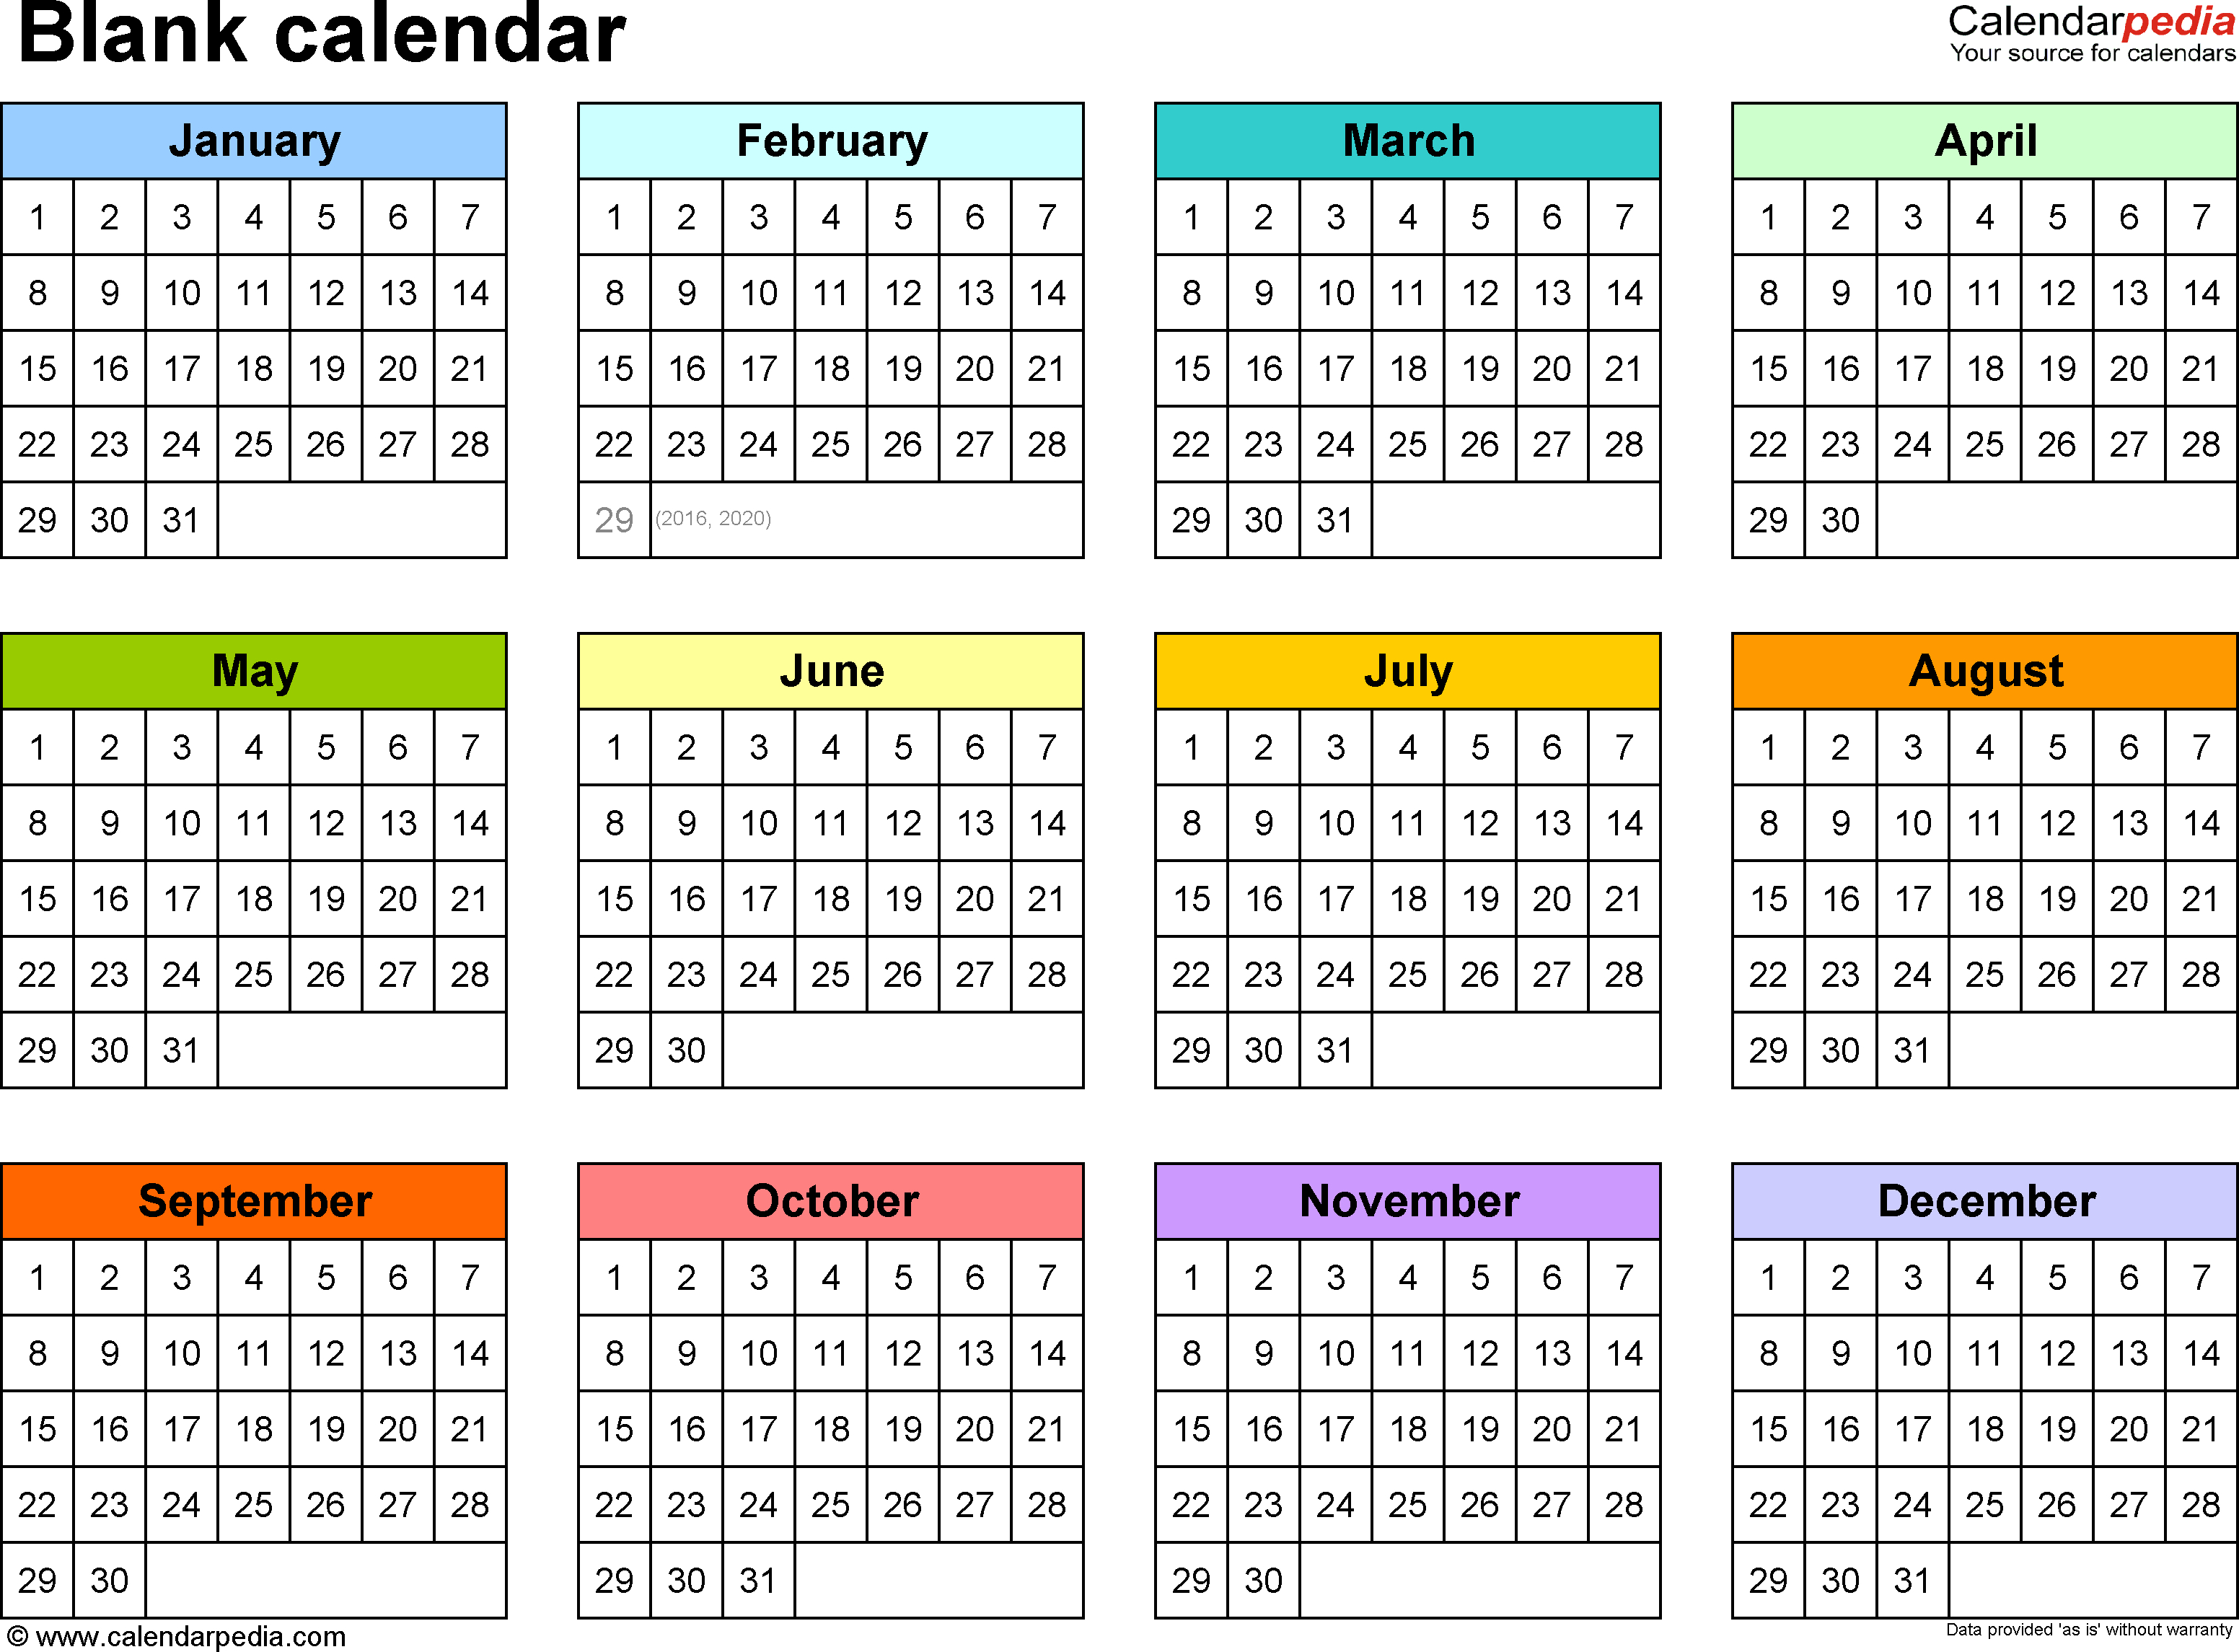 Blank Calendar - 9 Free Printable Microsoft Word Templates inside Blank Printable Calendars Yearly